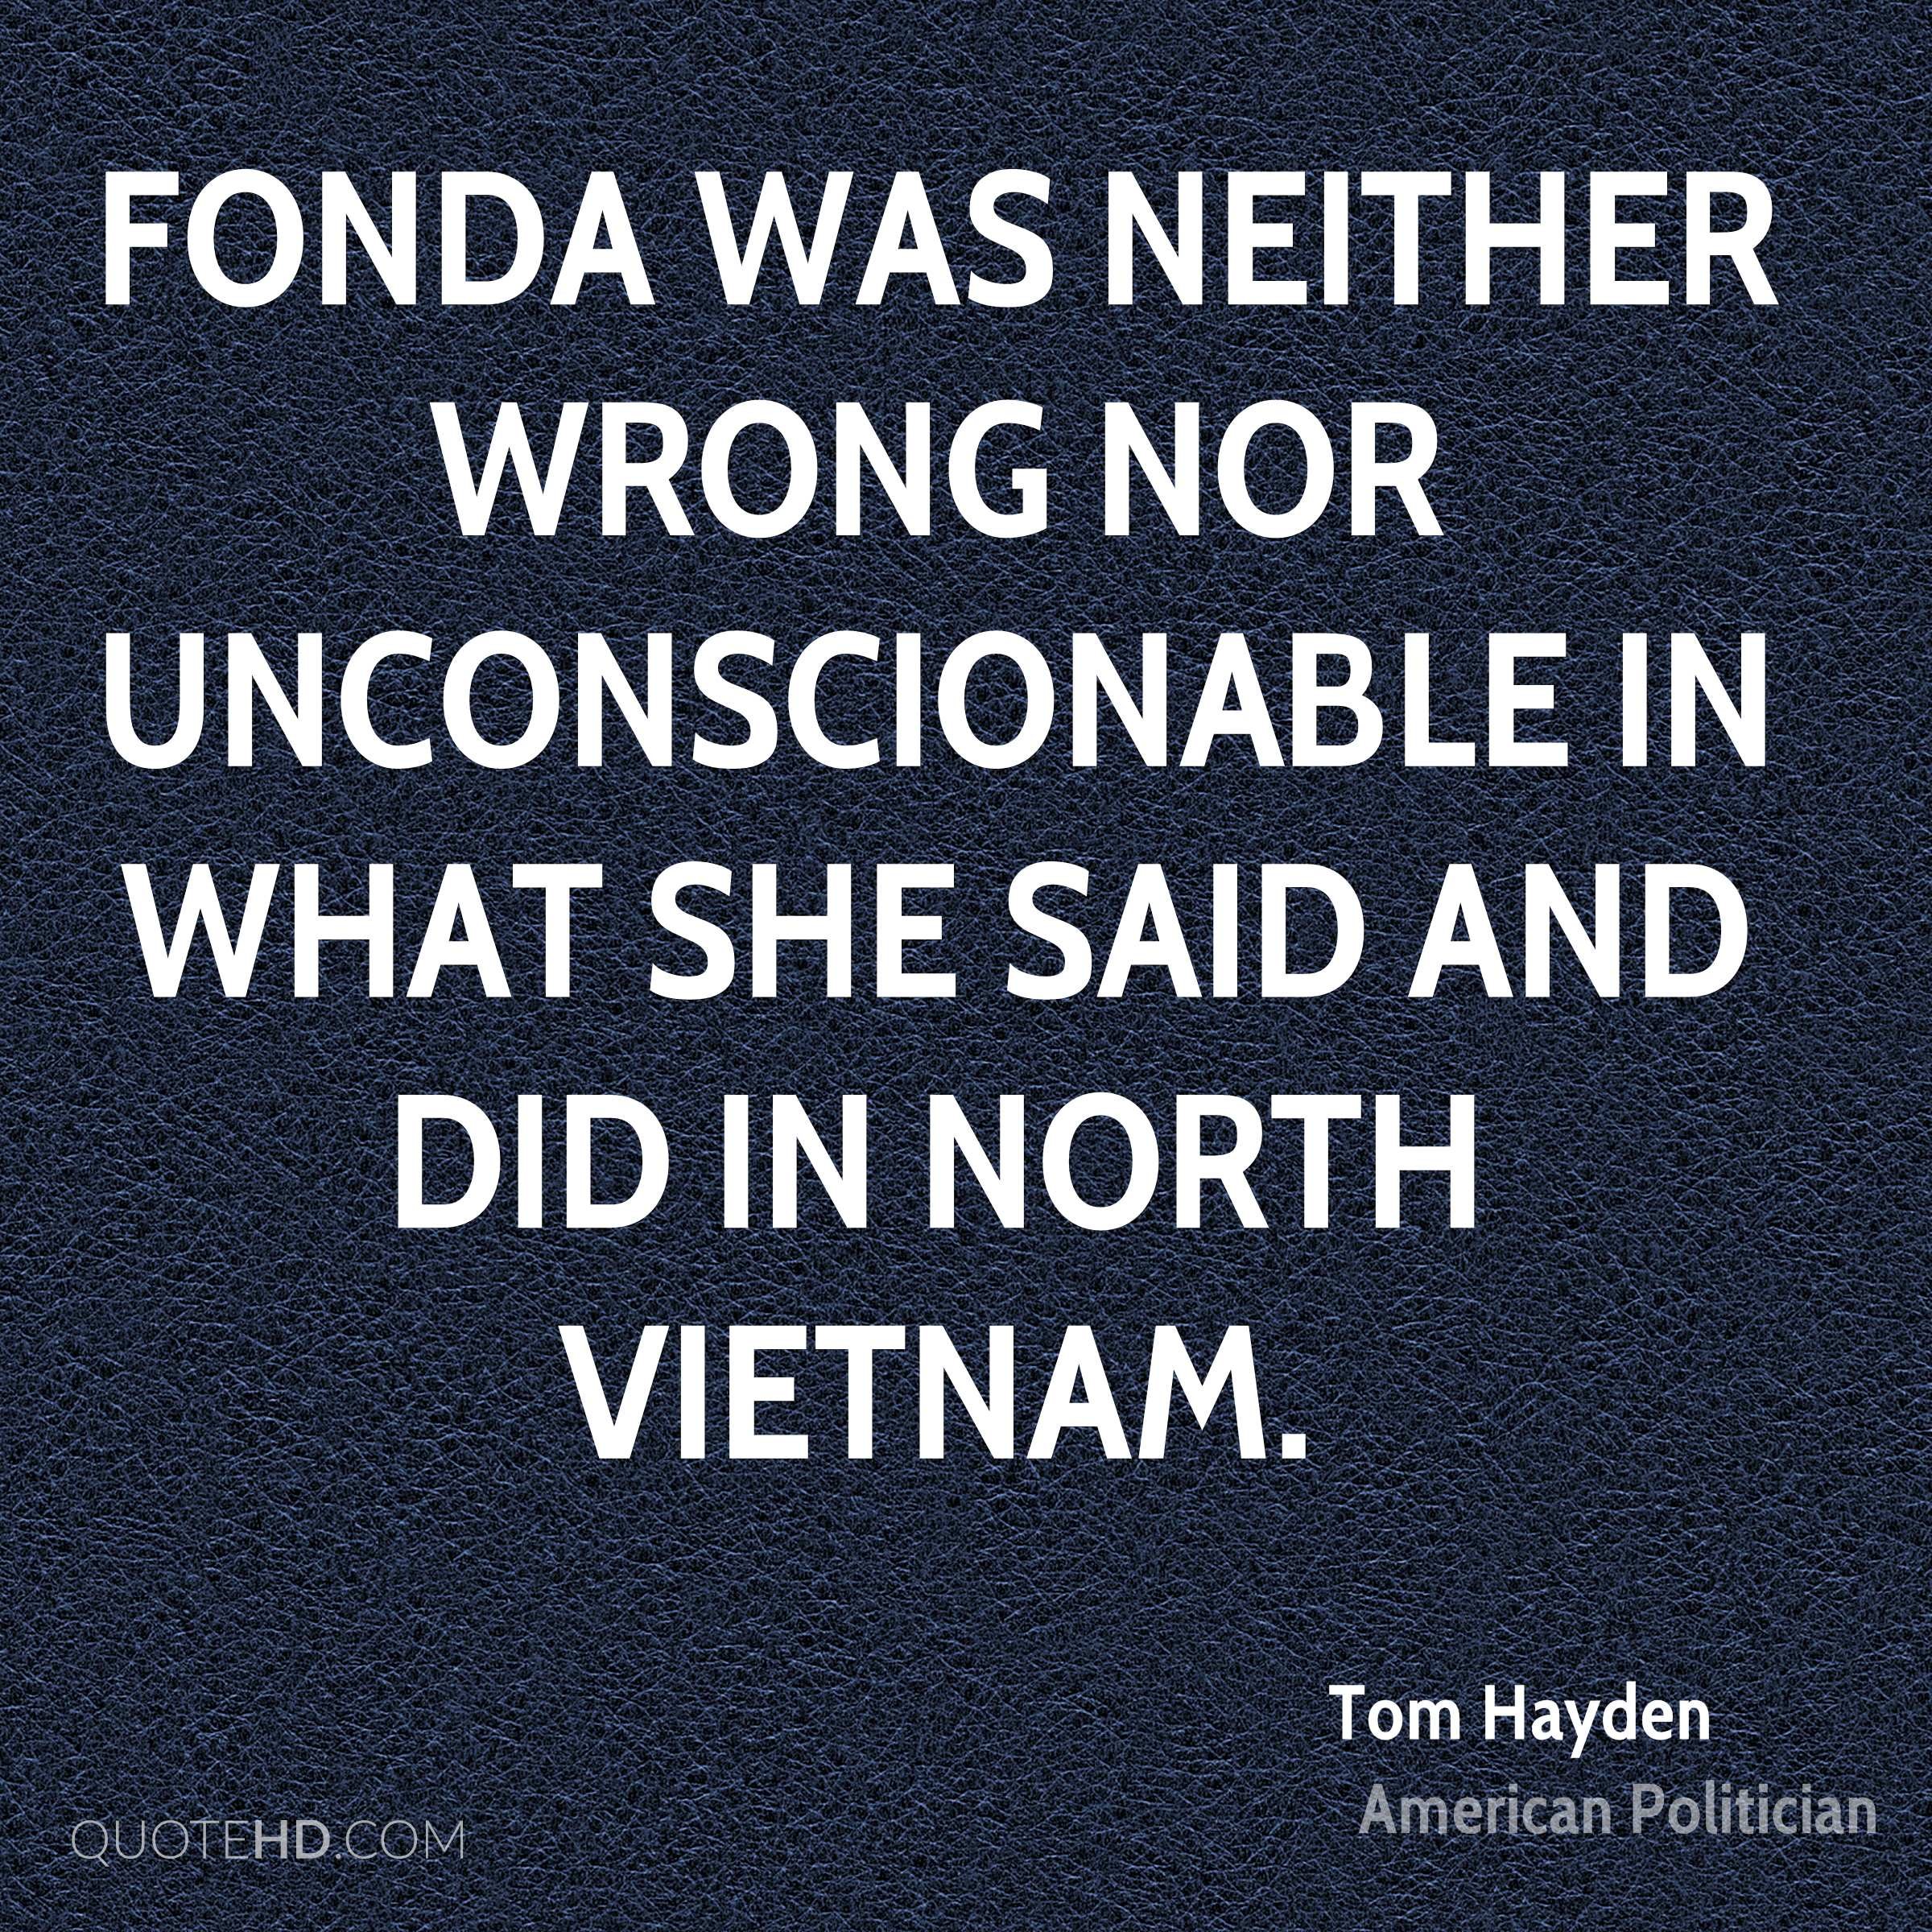 Fonda was neither wrong nor unconscionable in what she said and did in North Vietnam.